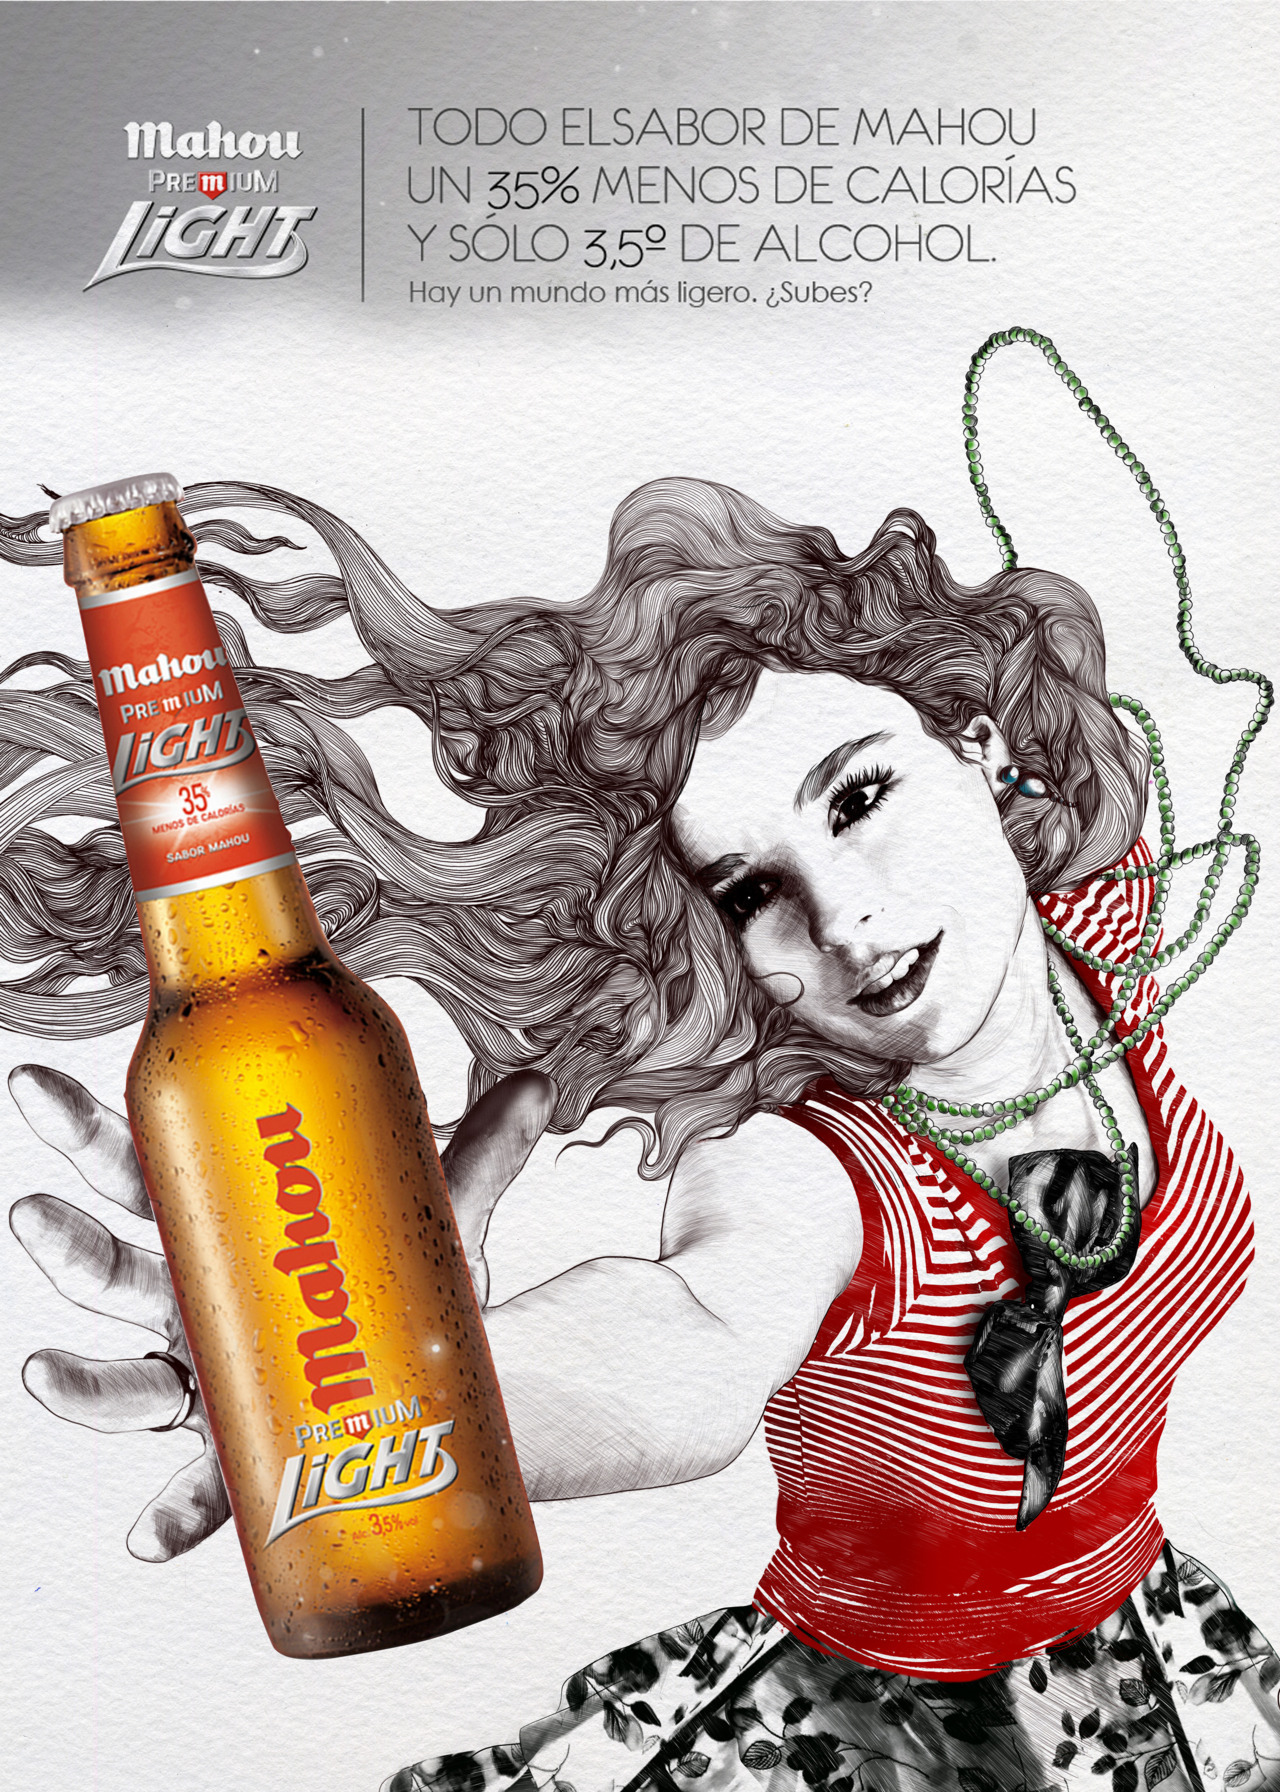 PROJECT/ LIGHT CLIENT/ MAHOU PREMIUM LIGHT AGENCY/ EL LABORATORIO. 2010